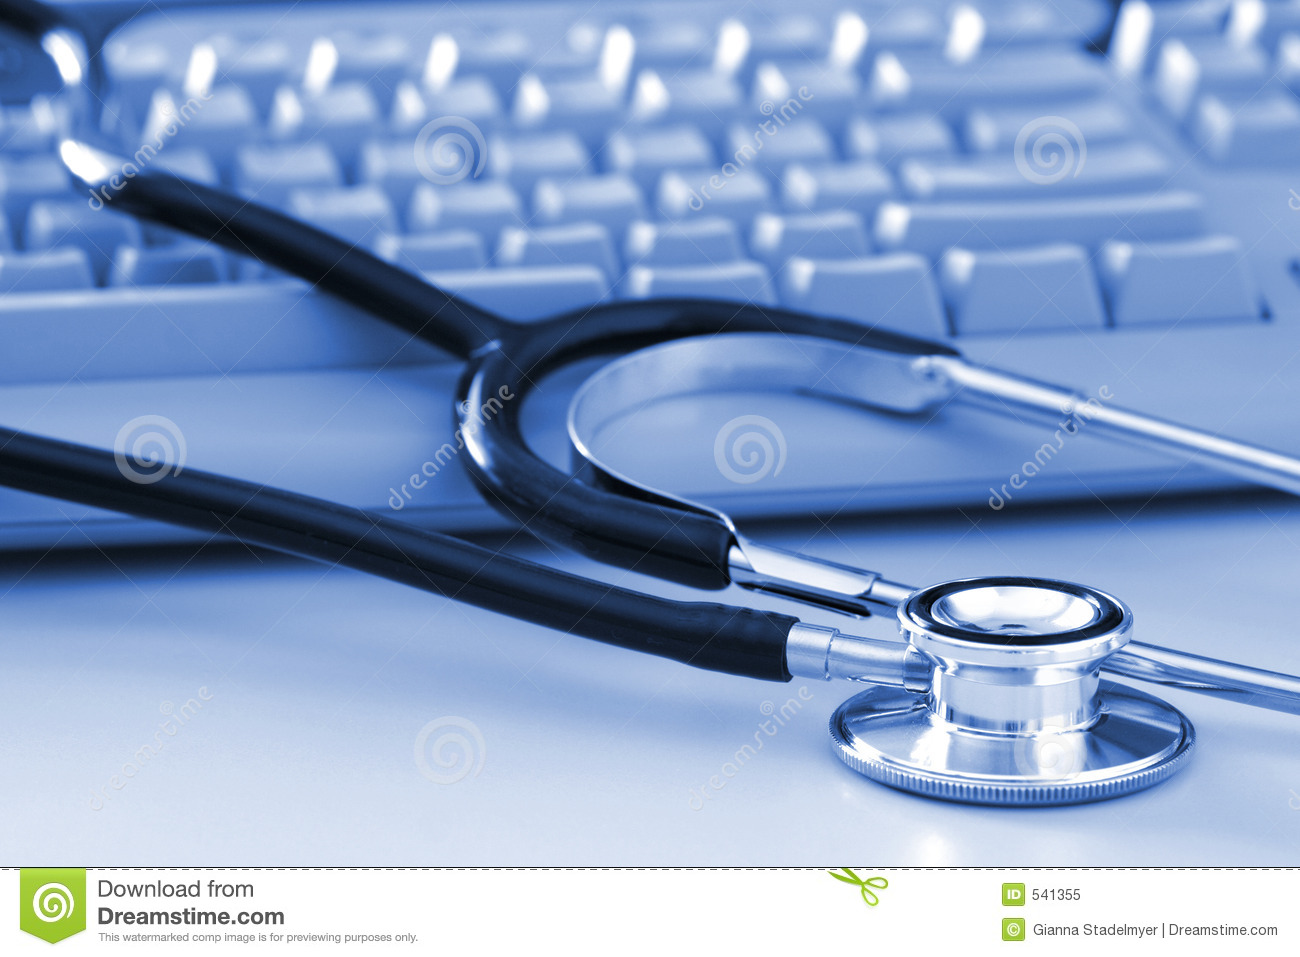 Stethoscope by Computer Keyboard